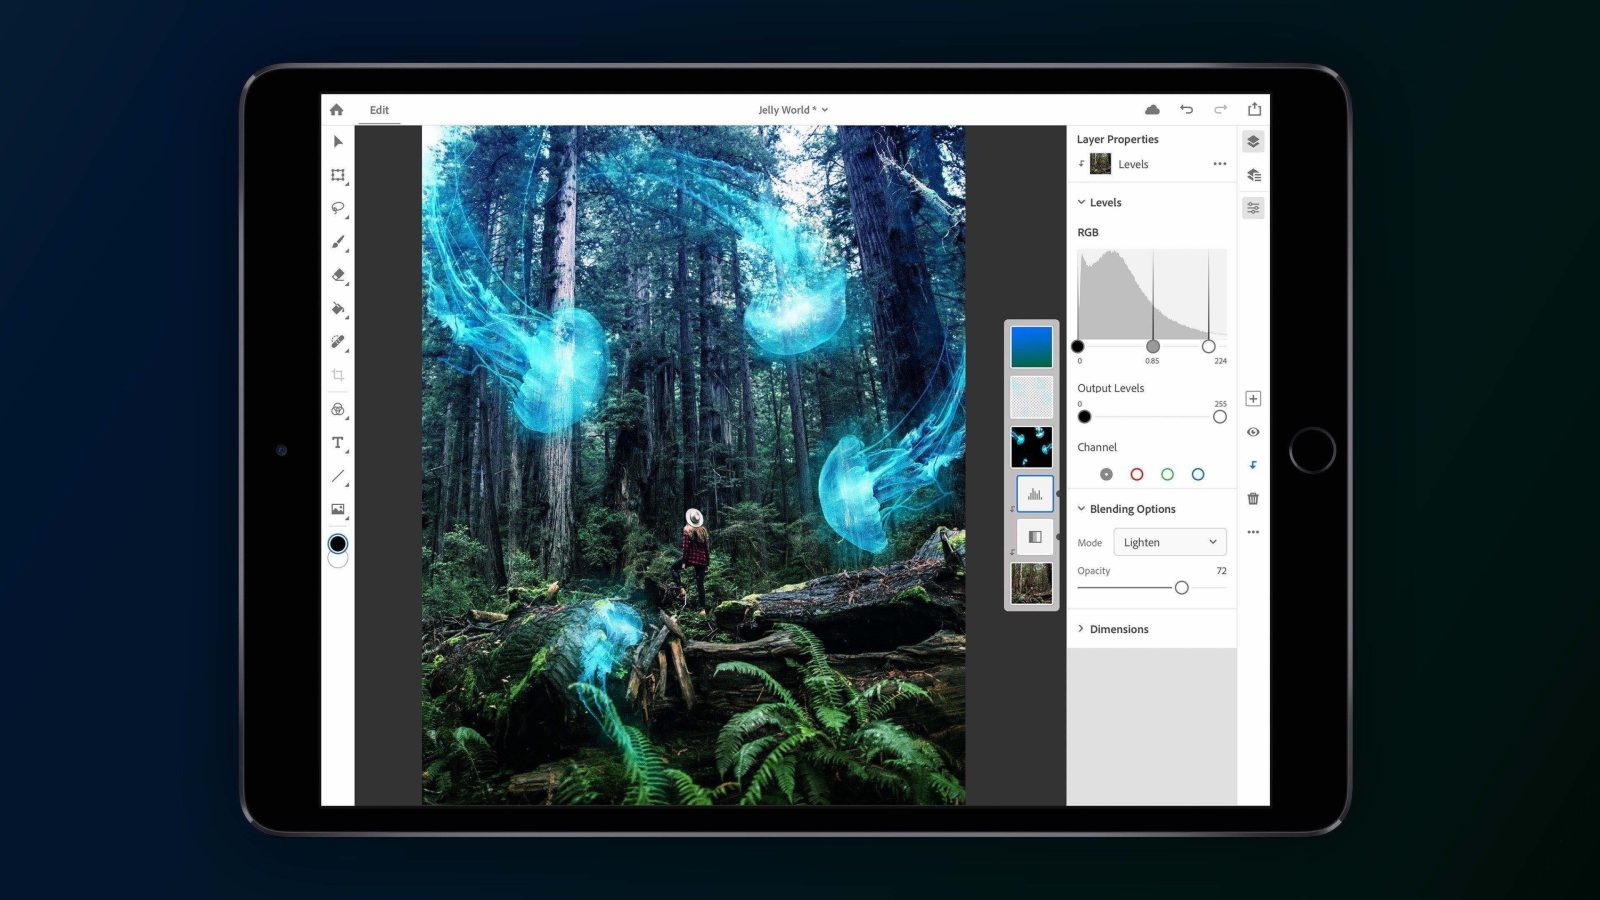 Photoshop for iPad should be released soon with missing features